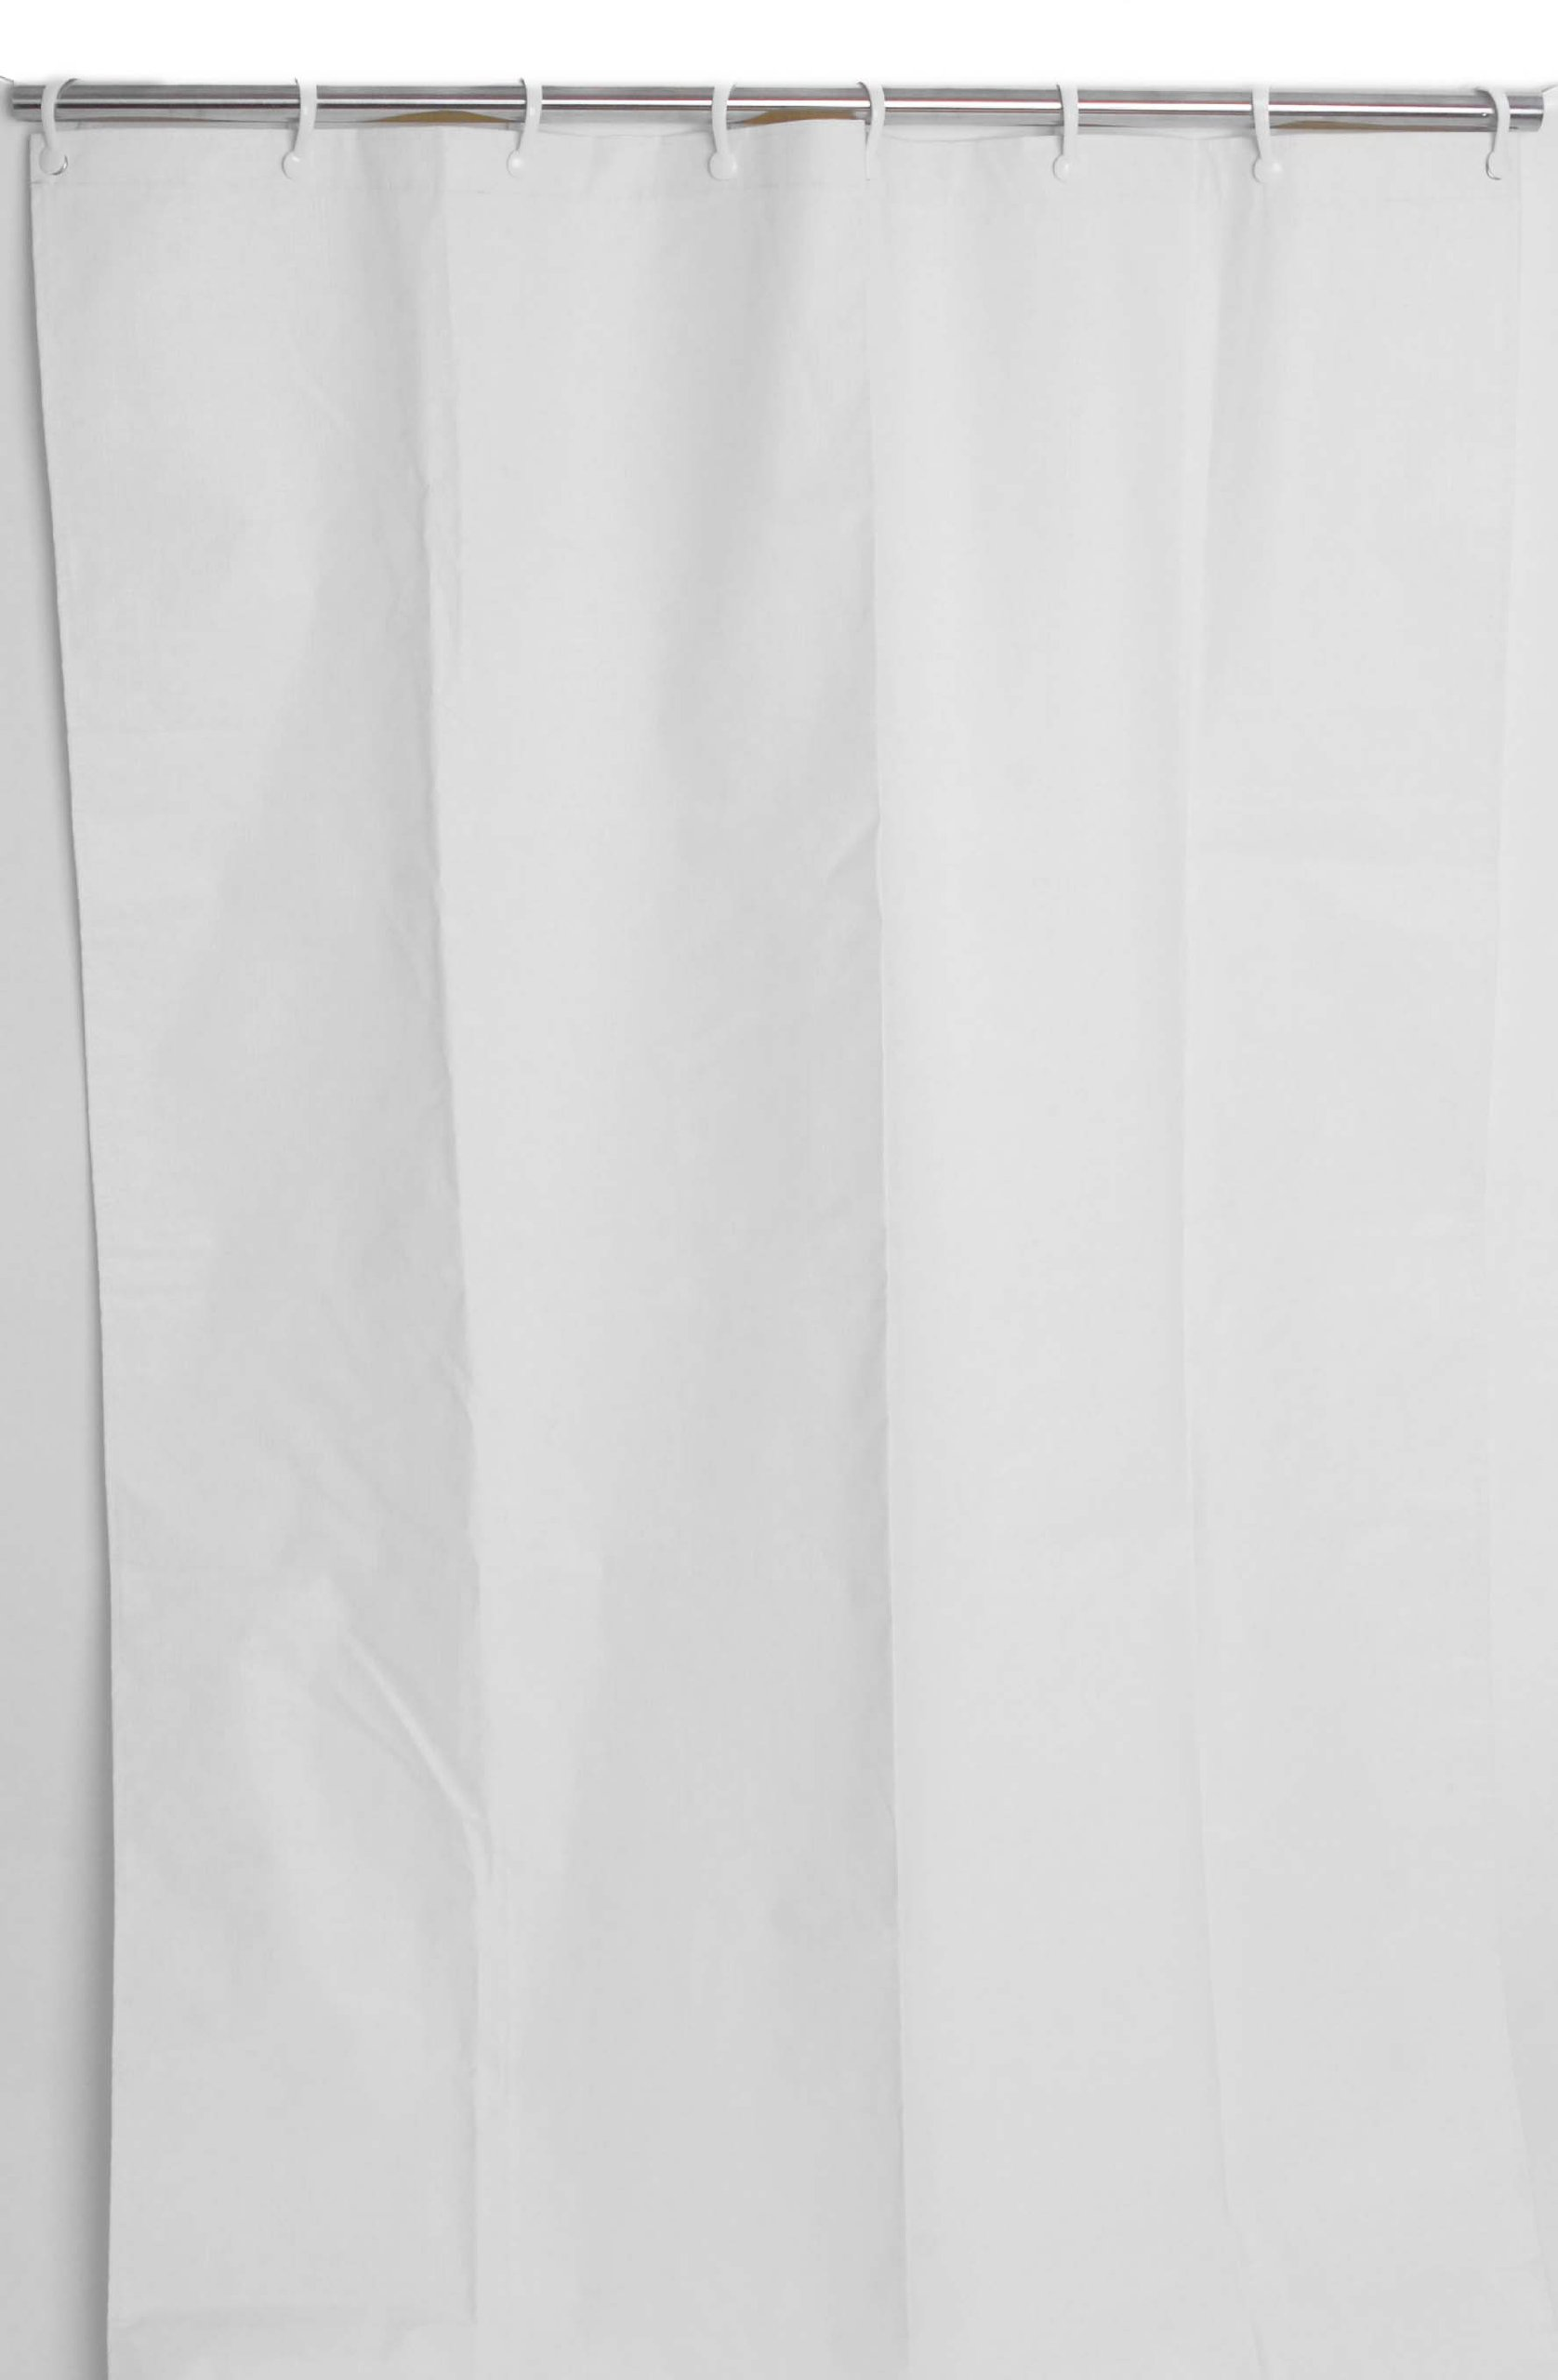 CSI Bathware CUR42x72NH-P5 Heavy-Duty Commercial Shower Curtain Antistatic Staph Resistant Mold and Odor Resistant (Pack of 5), 42 x 72'', White